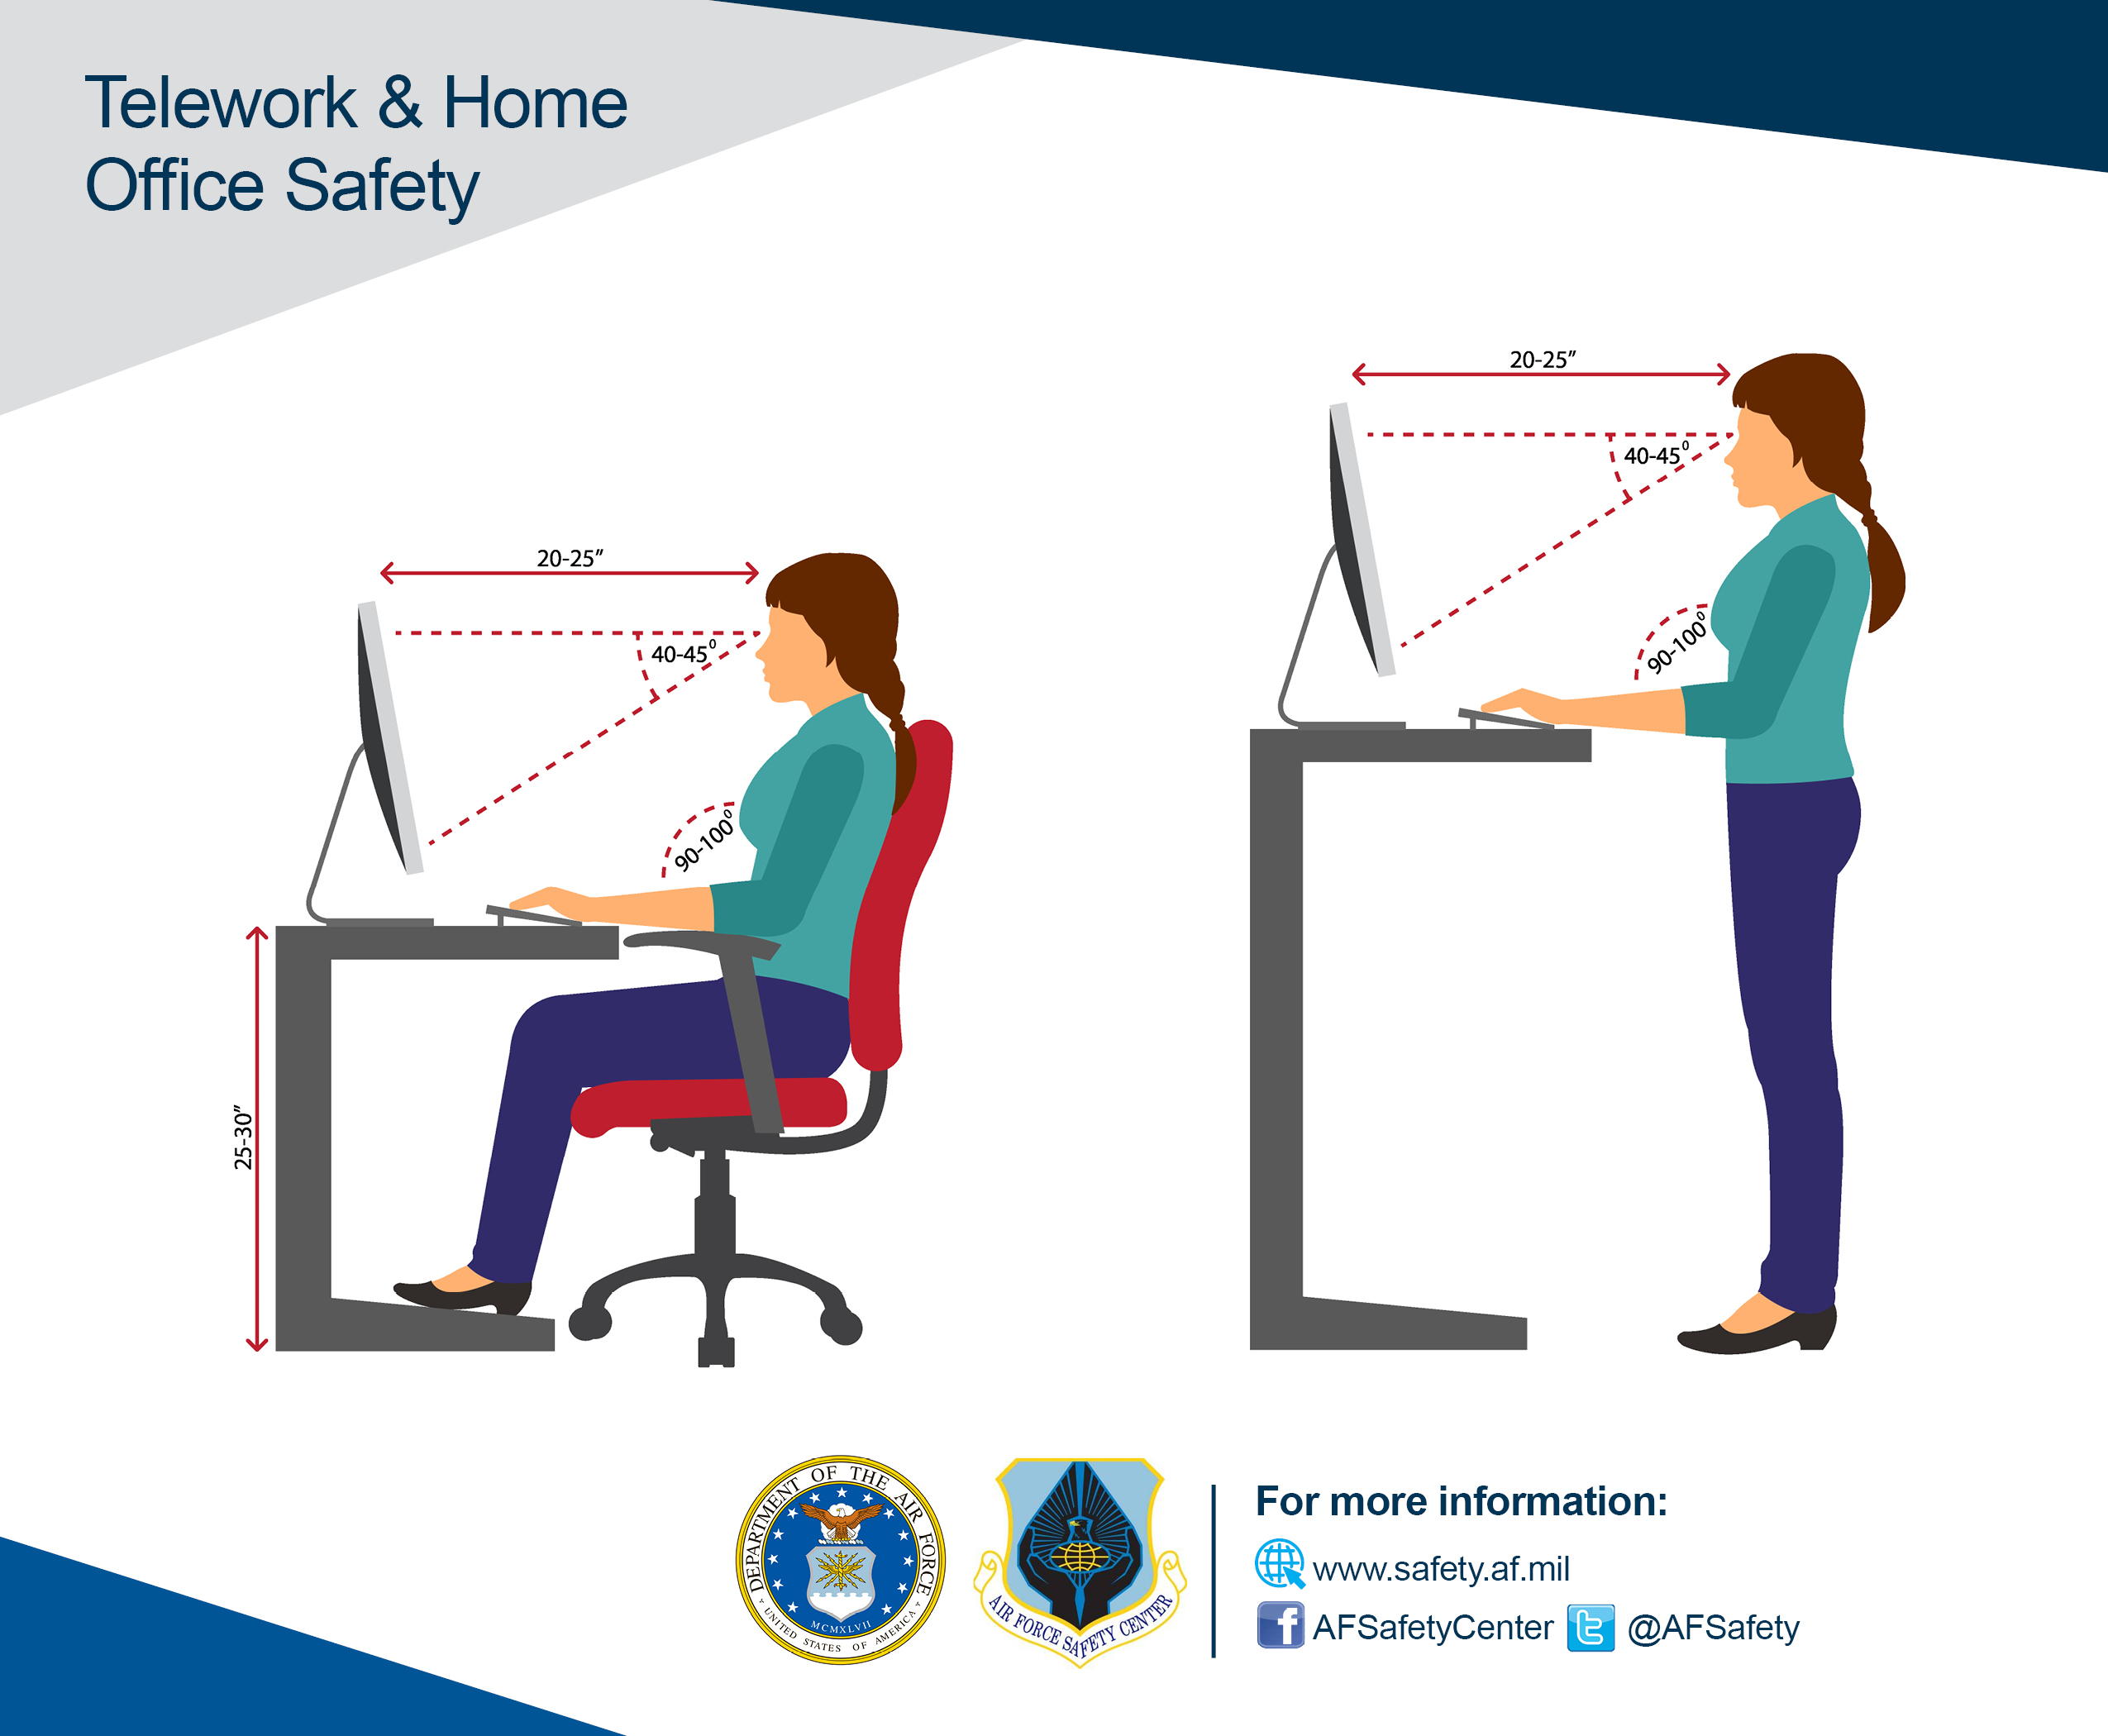 Telework & Home Office Safety Ergonomics